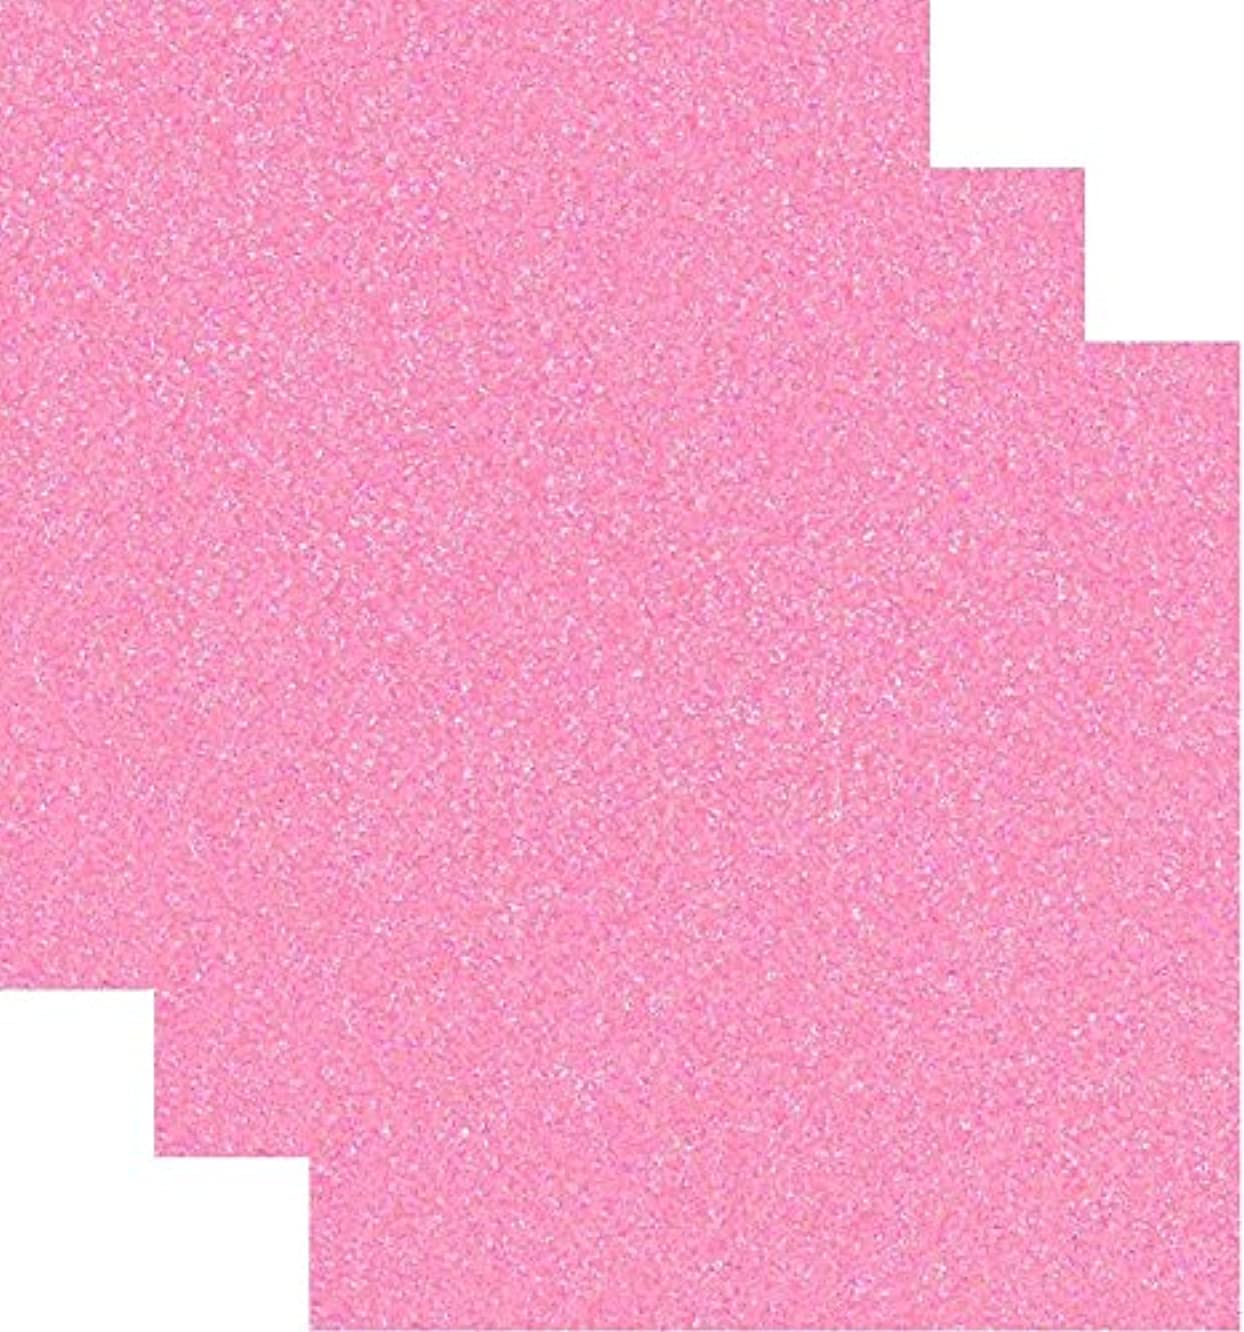 Siser Glitter Heat Transfer Vinyl HTV for T-Shirts 10 by 12 Inches (1 Foot) Sheets 3 Pack (Neon Pink)